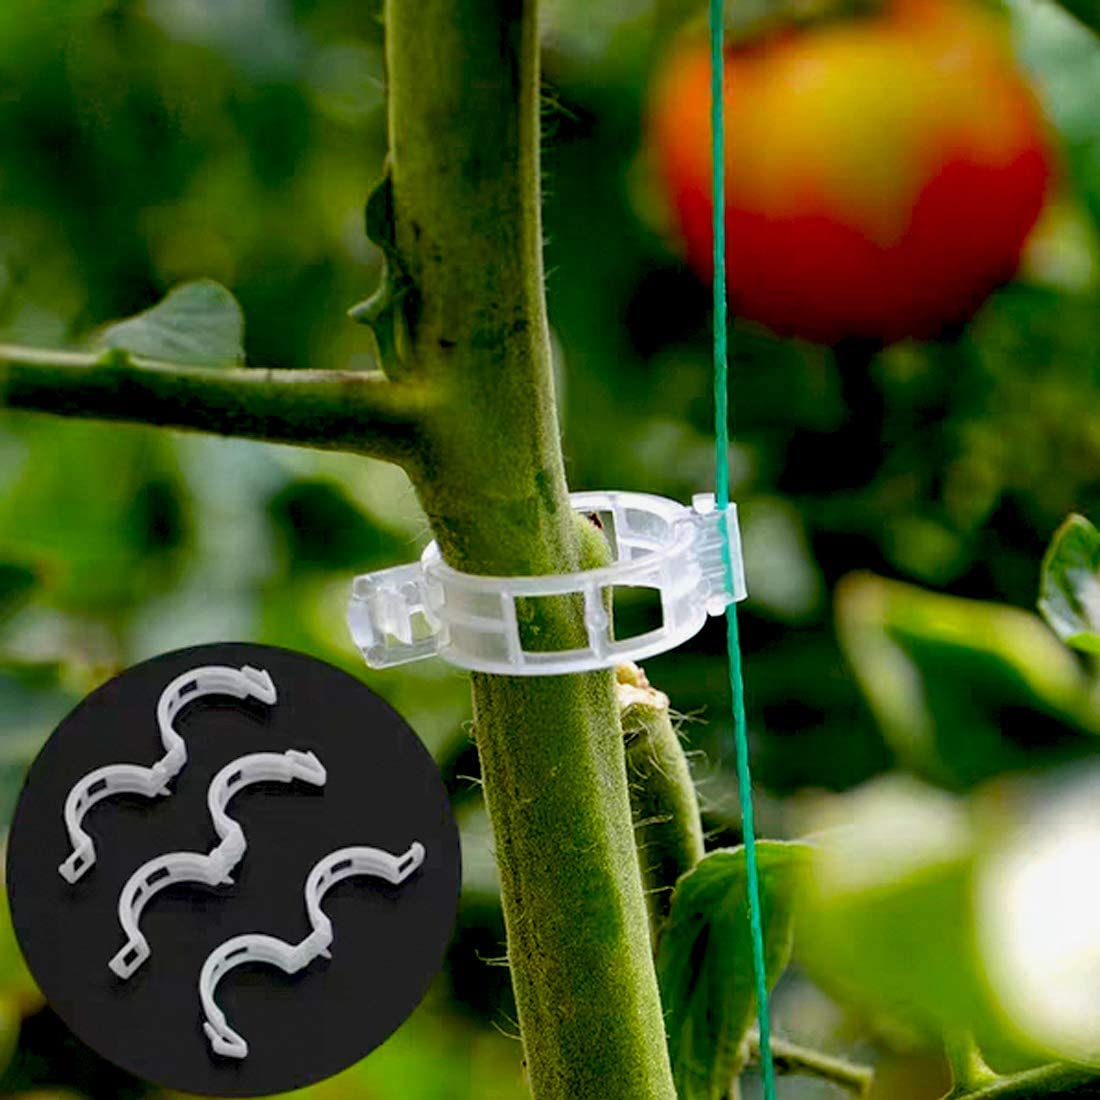 SHOHEN 200PCs Plant Support Garden Clip Vine Clip Used for Flower Cine Rope Tomato Orchid Upright Growth Garden Support Clip Make The Plant Healthier